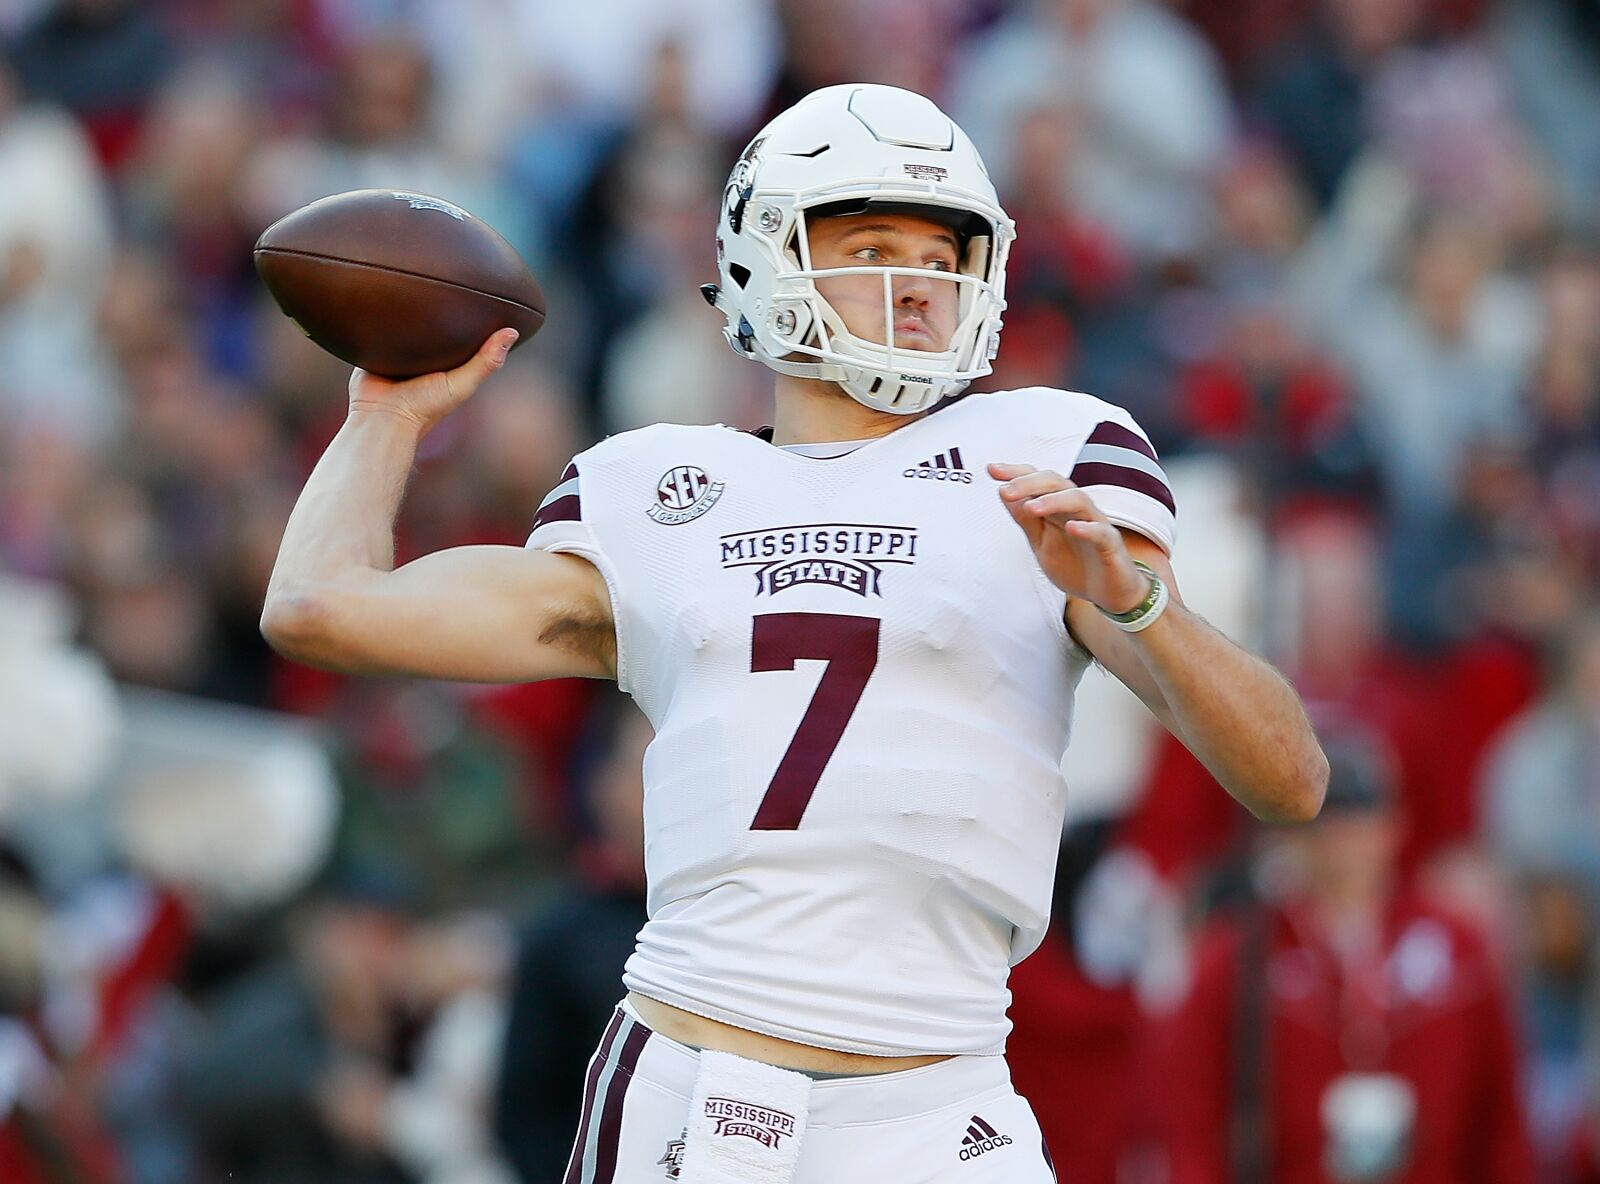 Tampa Bay Buccaneers: Nick Fitzgerald-prodigy or prayer?